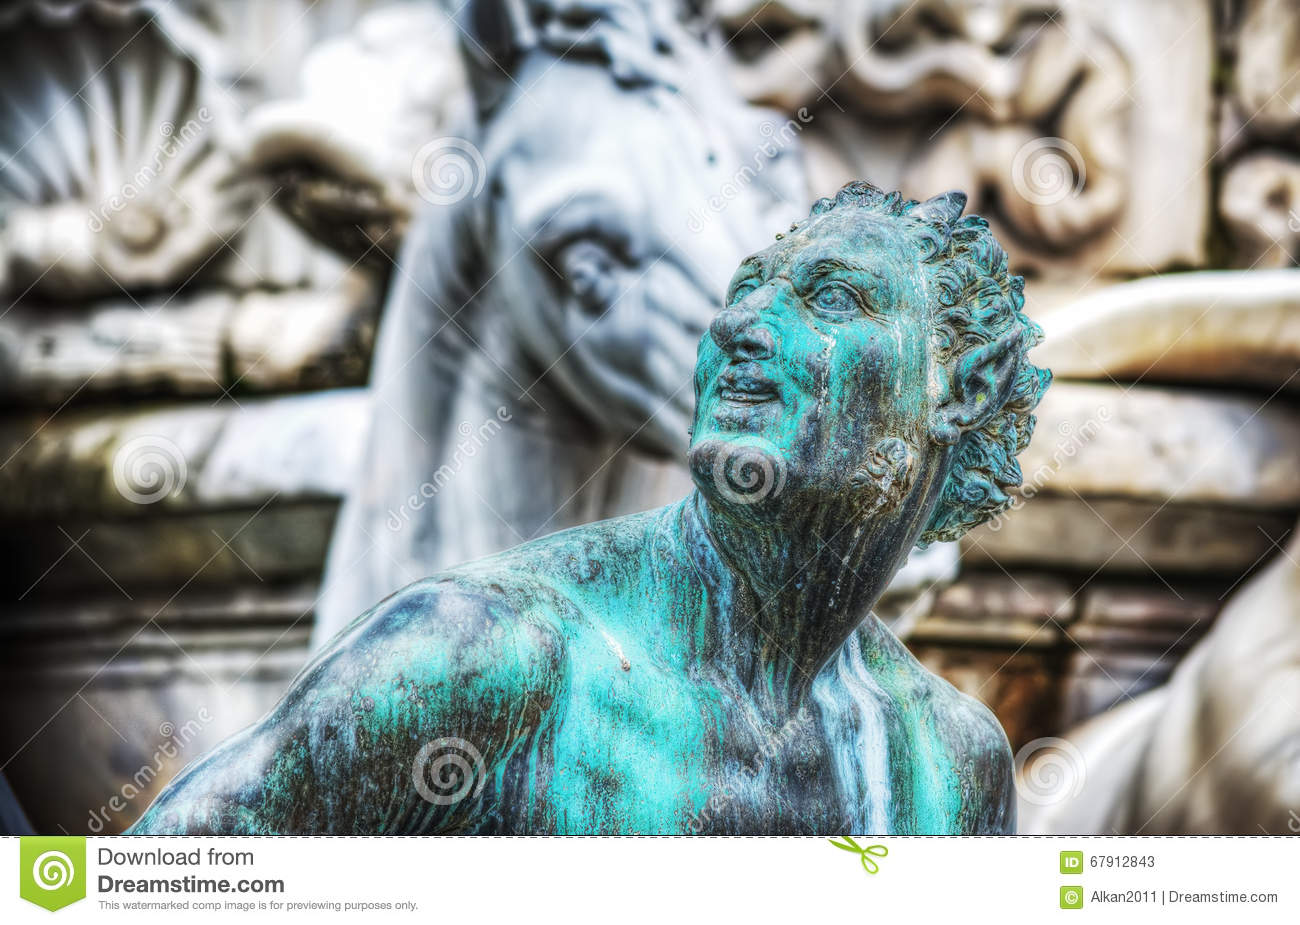 Sculptures at the Neptune Statue in Florence — Stock Photo